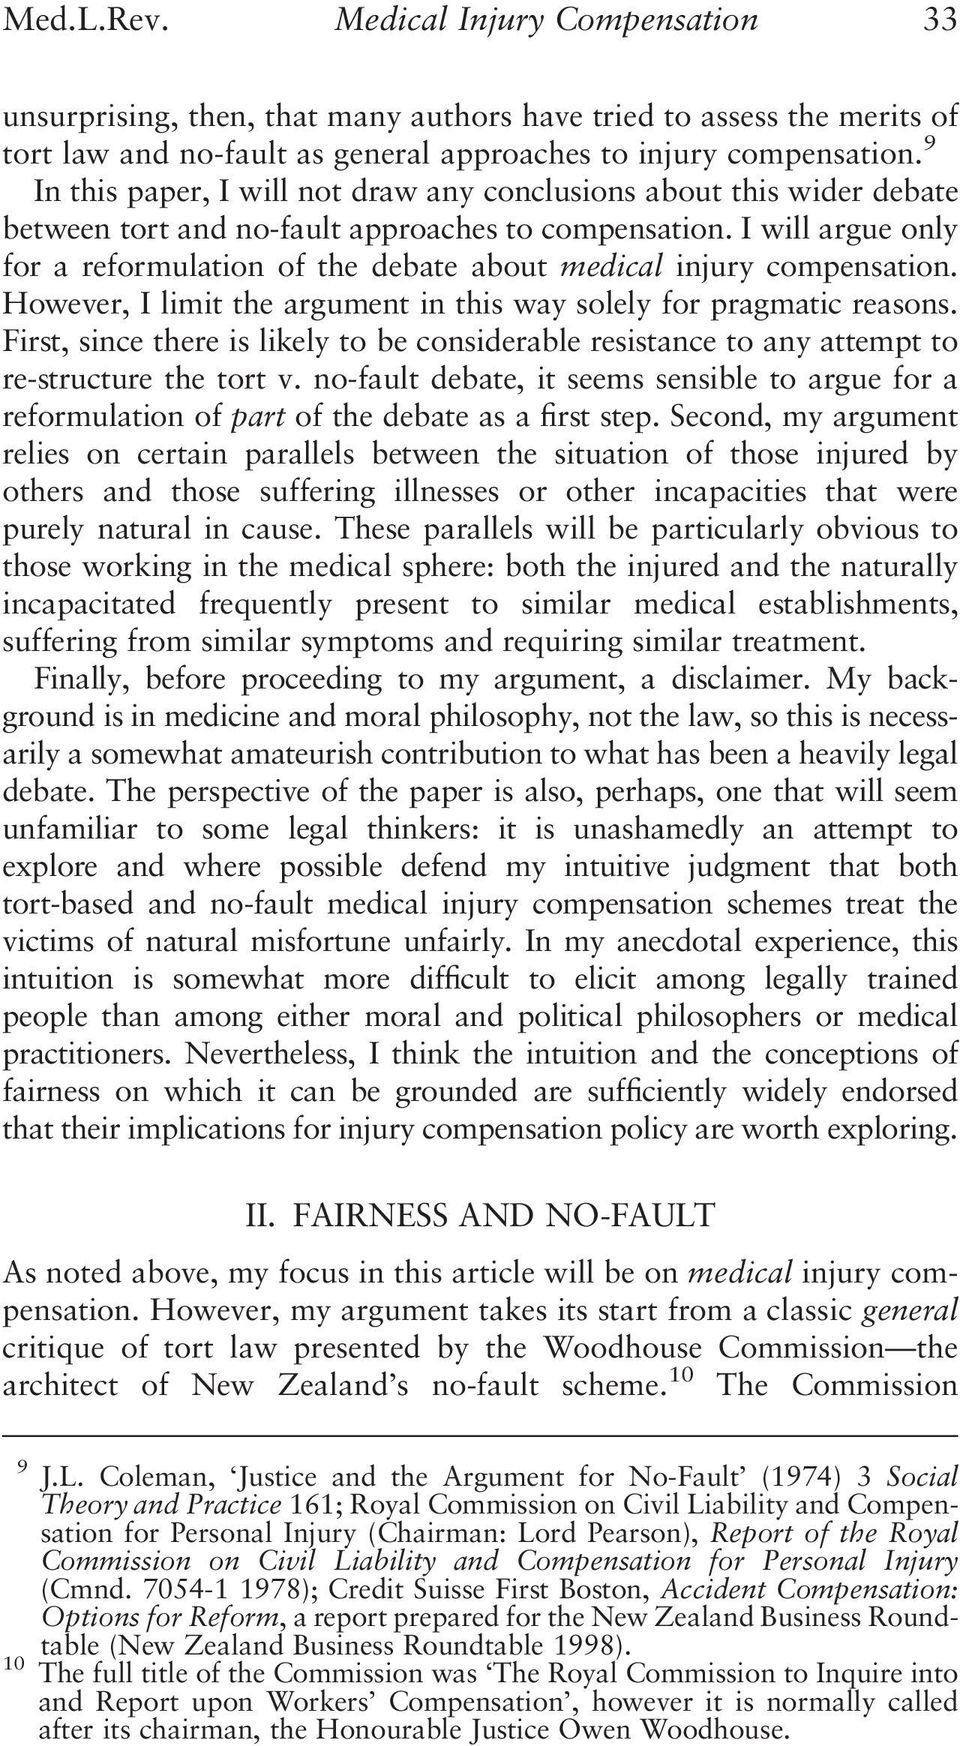 I will argue only for a reformulation of the debate about medical injury compensation. However, I limit the argument in this way solely for pragmatic reasons.